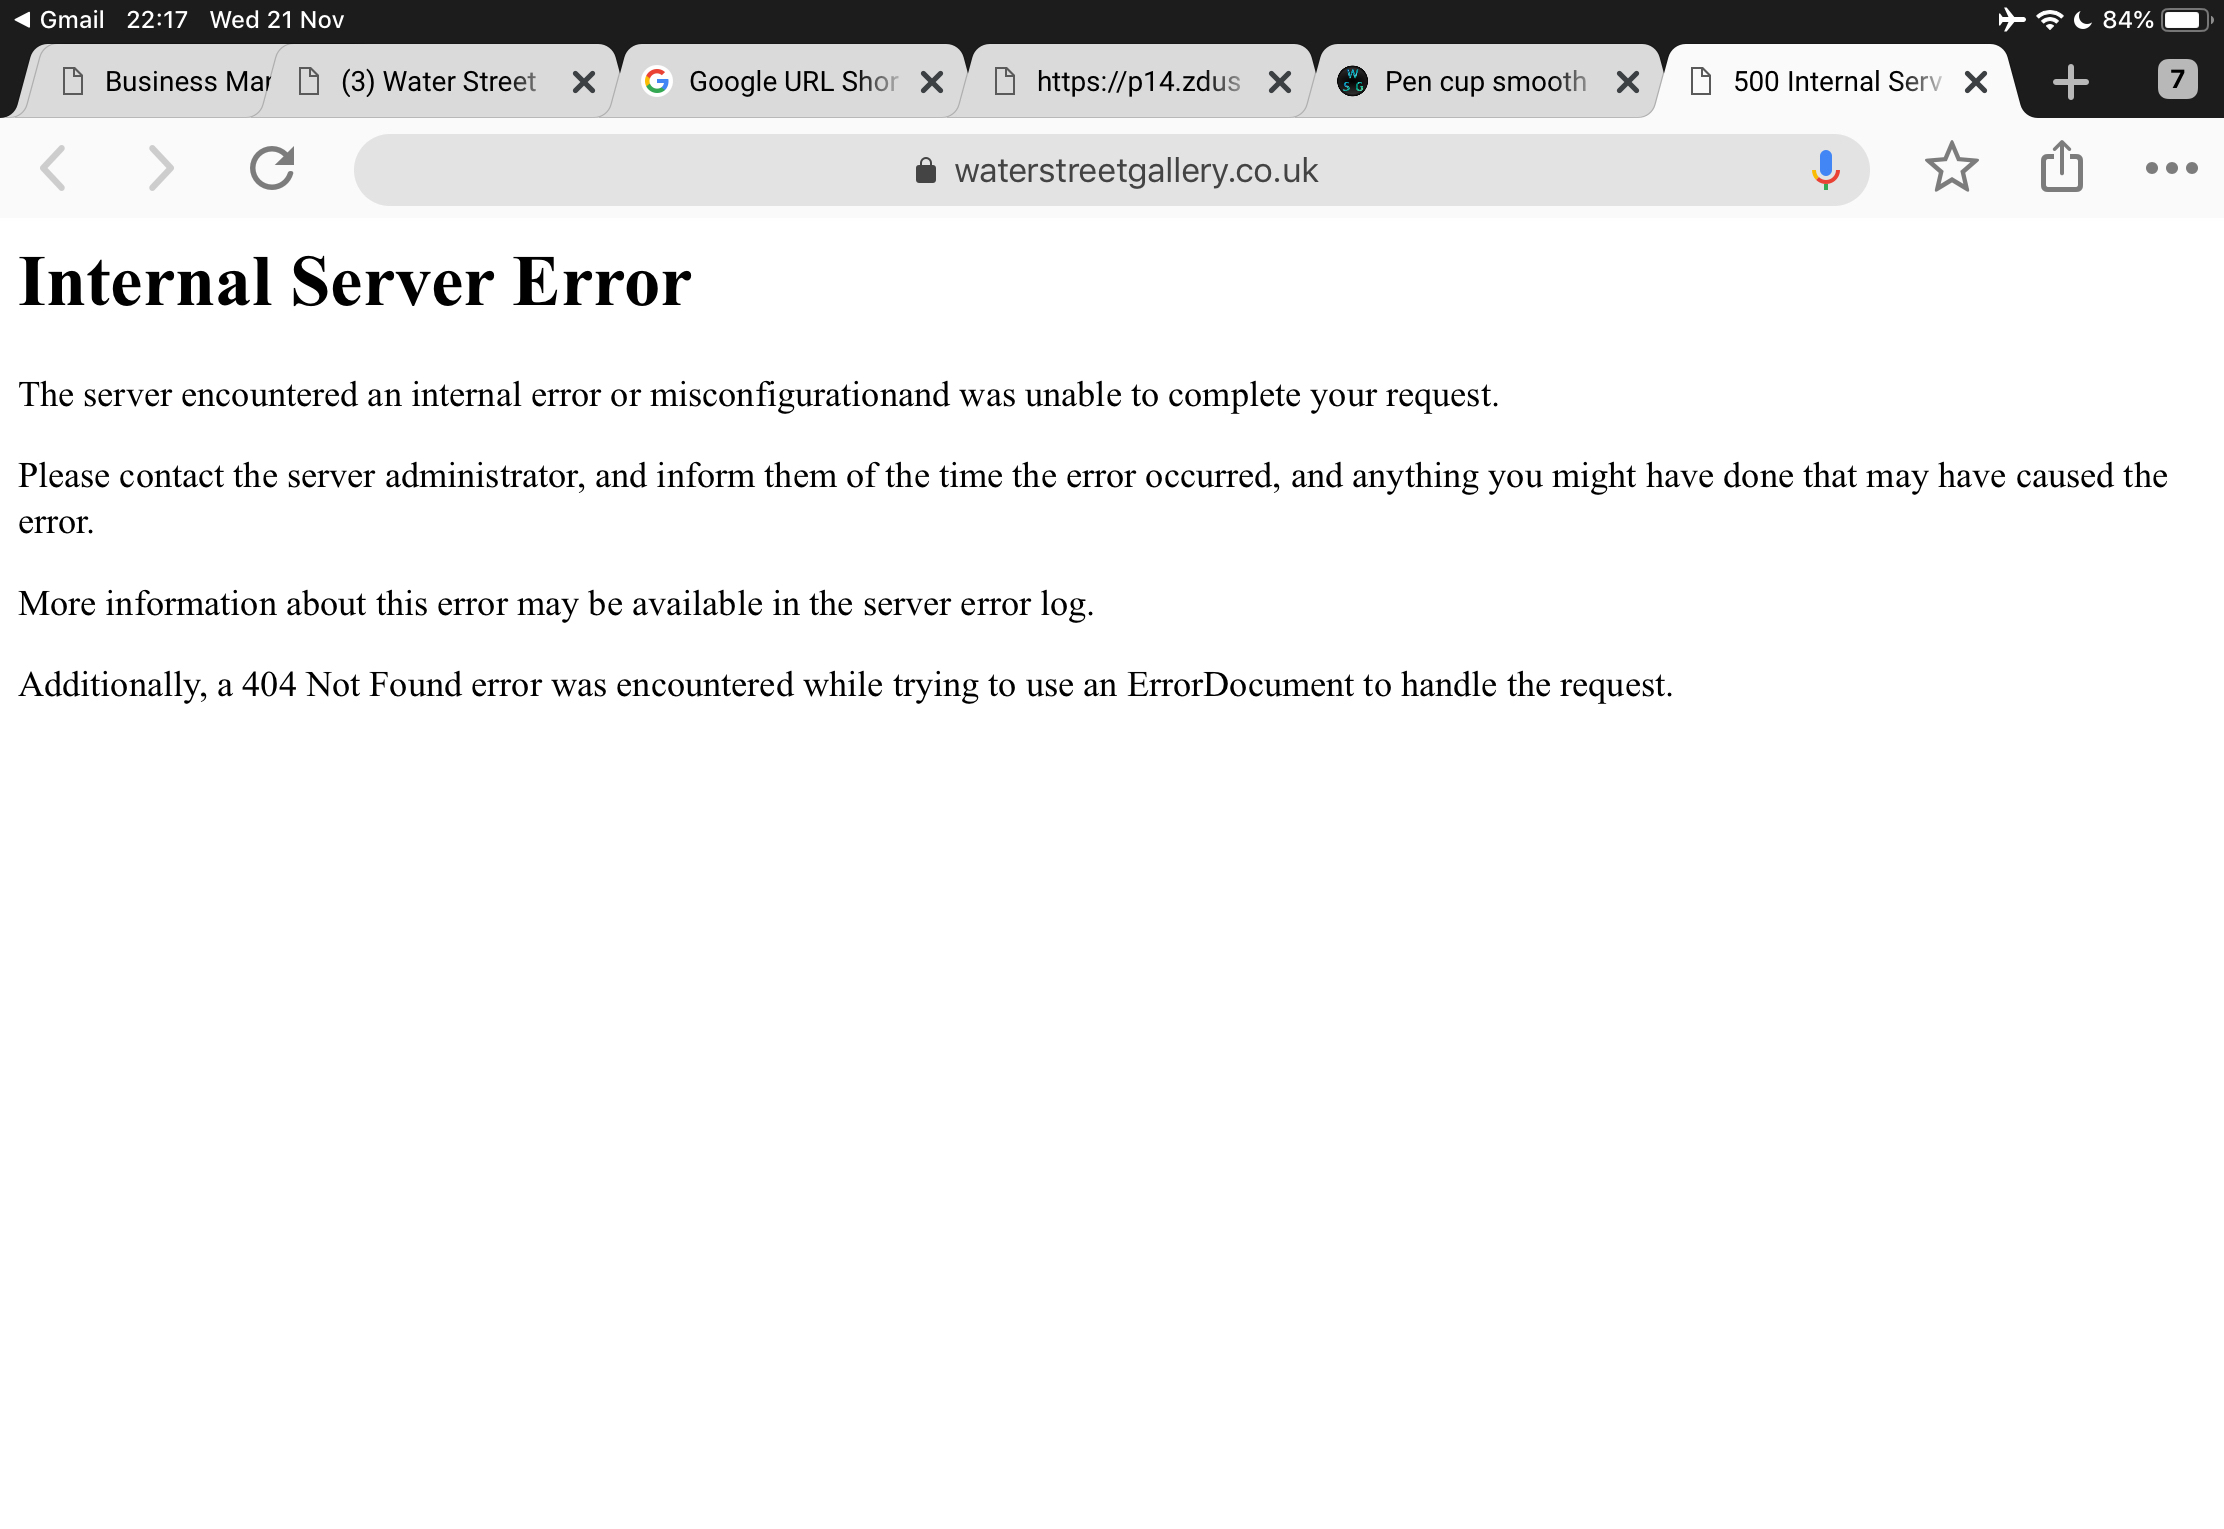 Server Errors - Front End - Incident not resolved